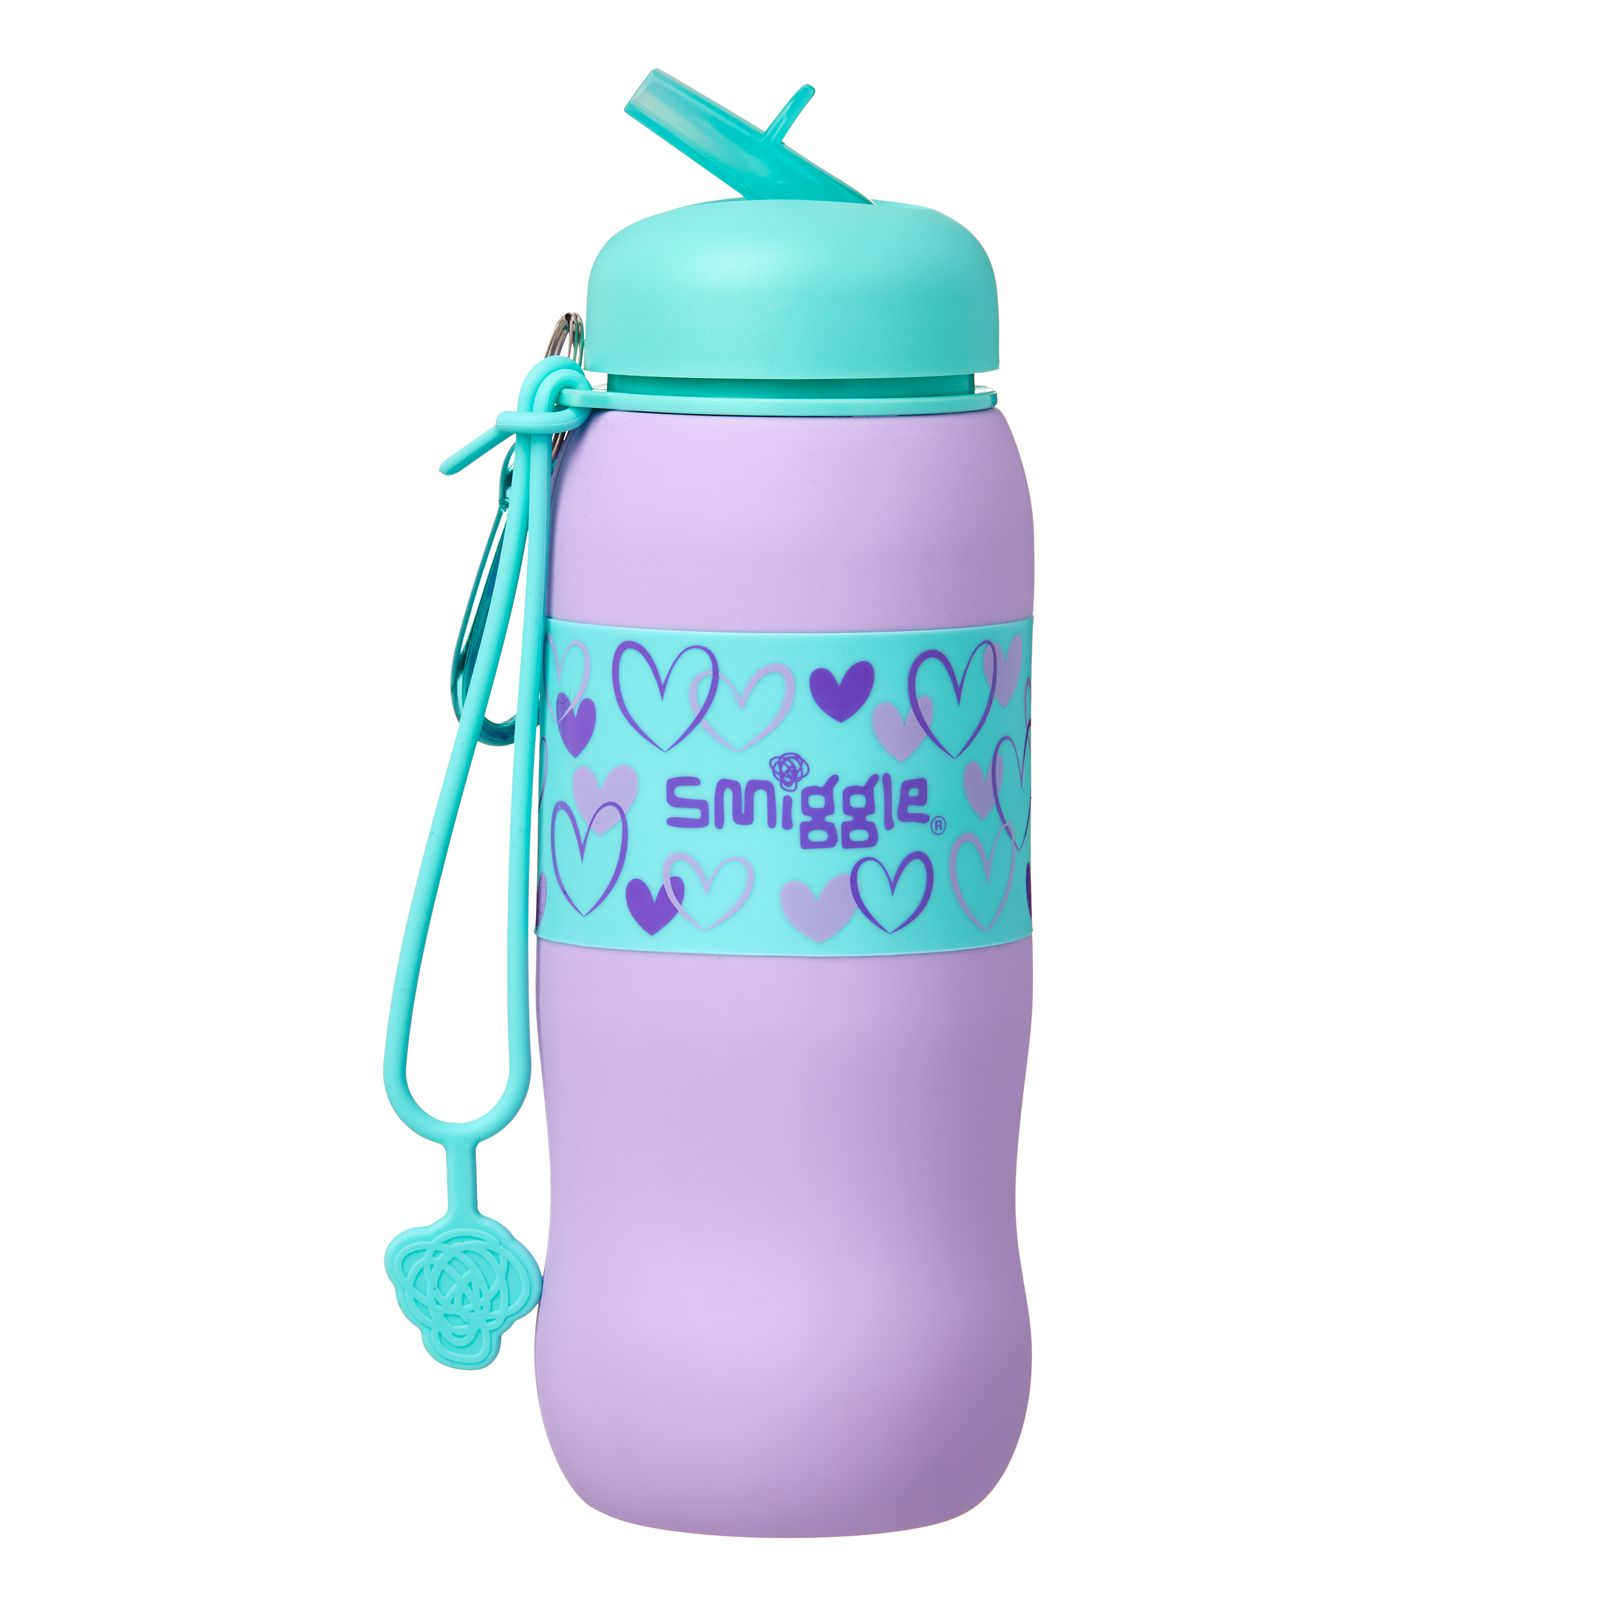 Smiggle dit silicone Roll Bouteille